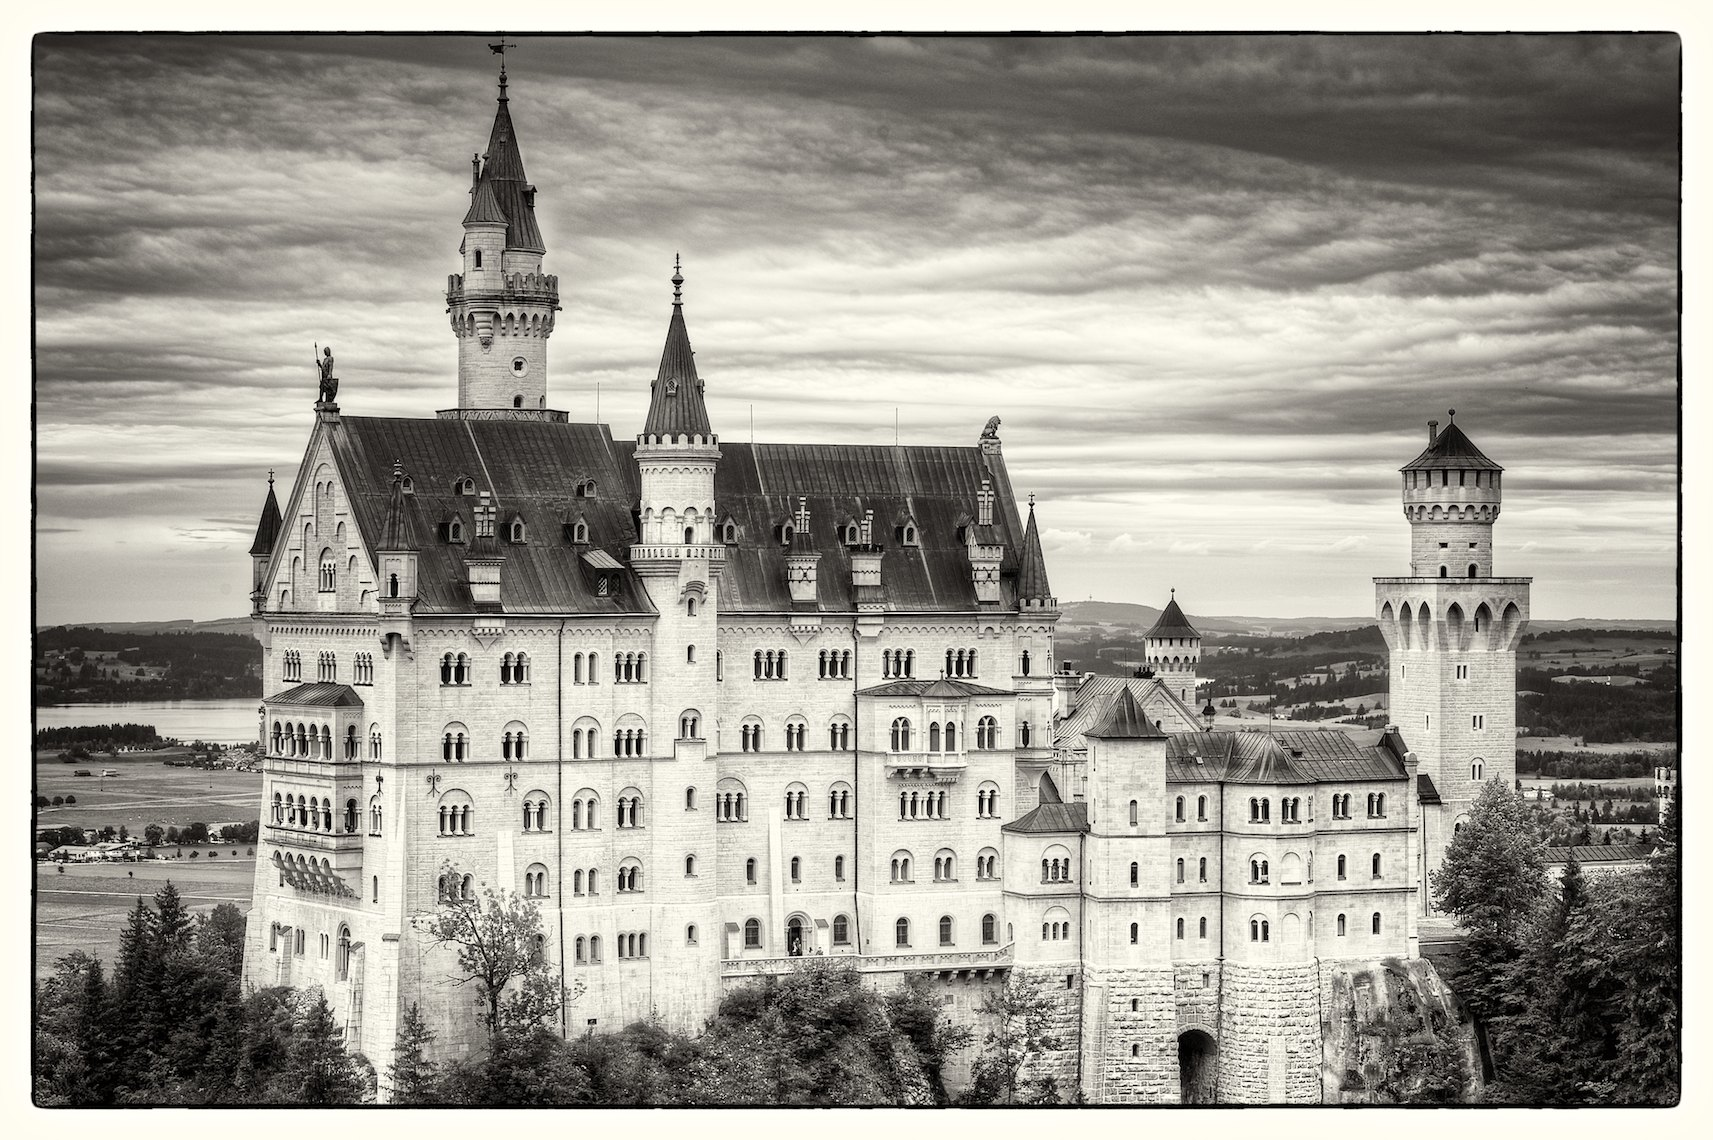 Germany Bavaria Schloss Neuschwanstein HDR black and white